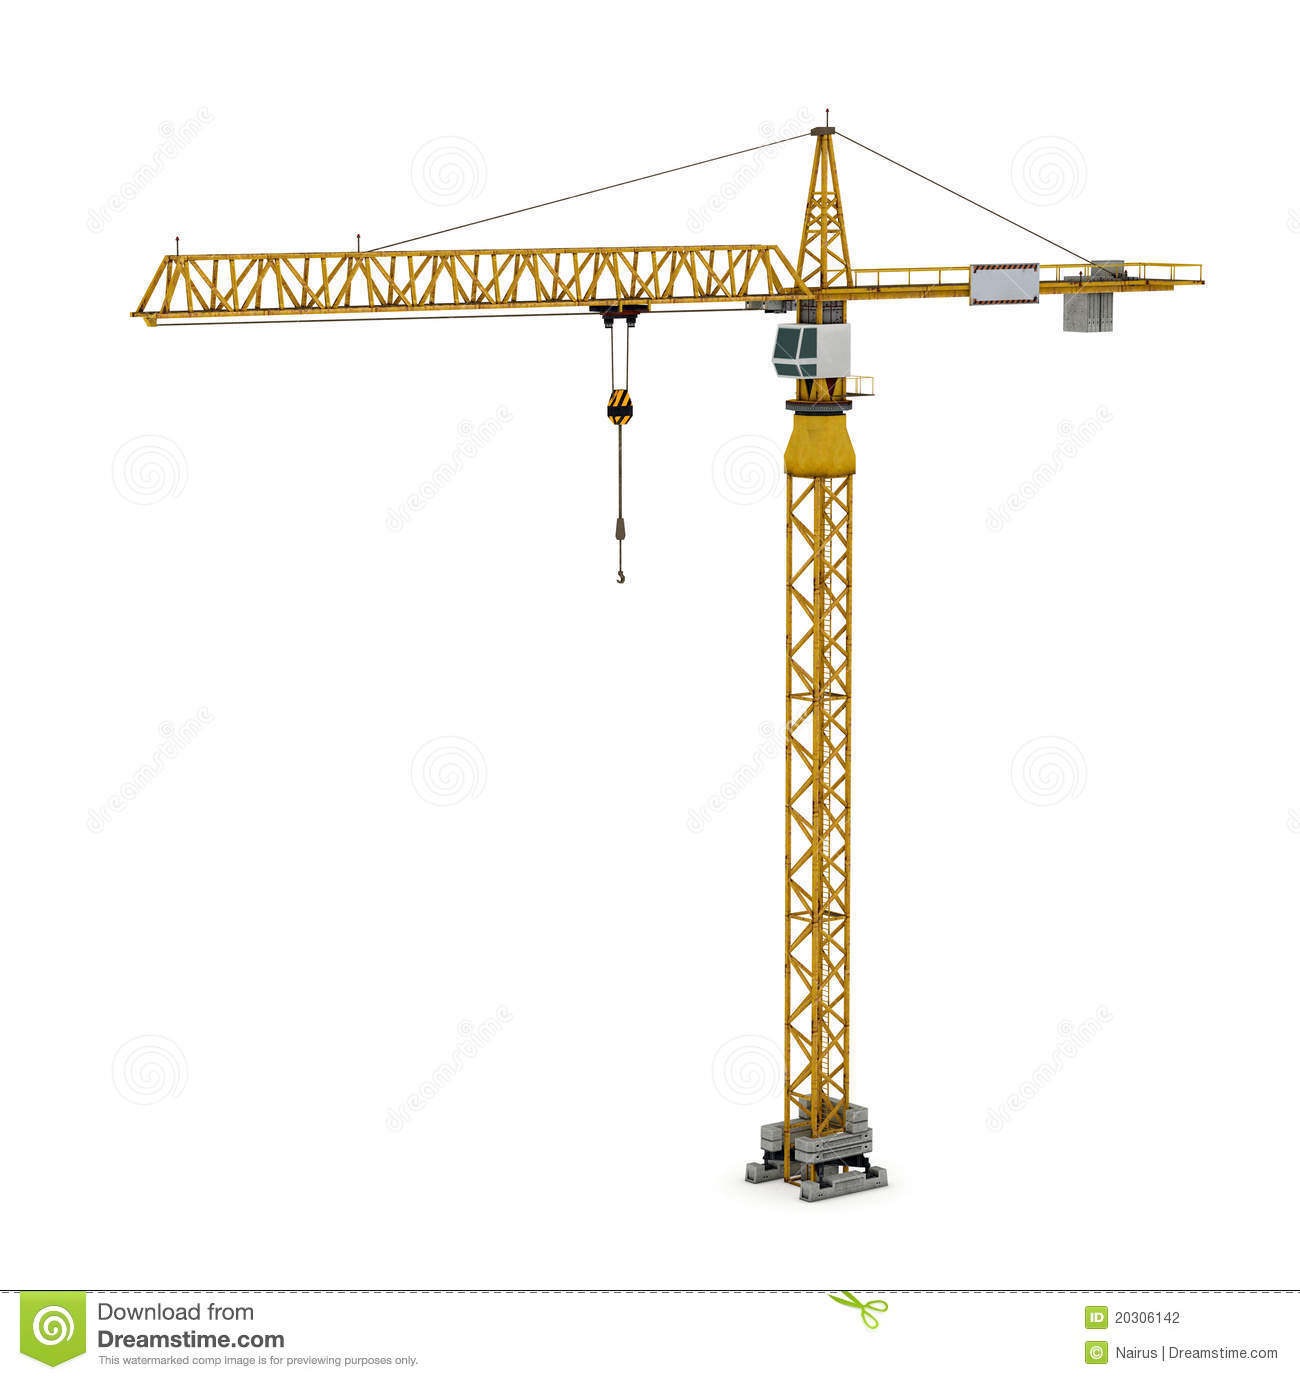 6 Tower Crane Design Images